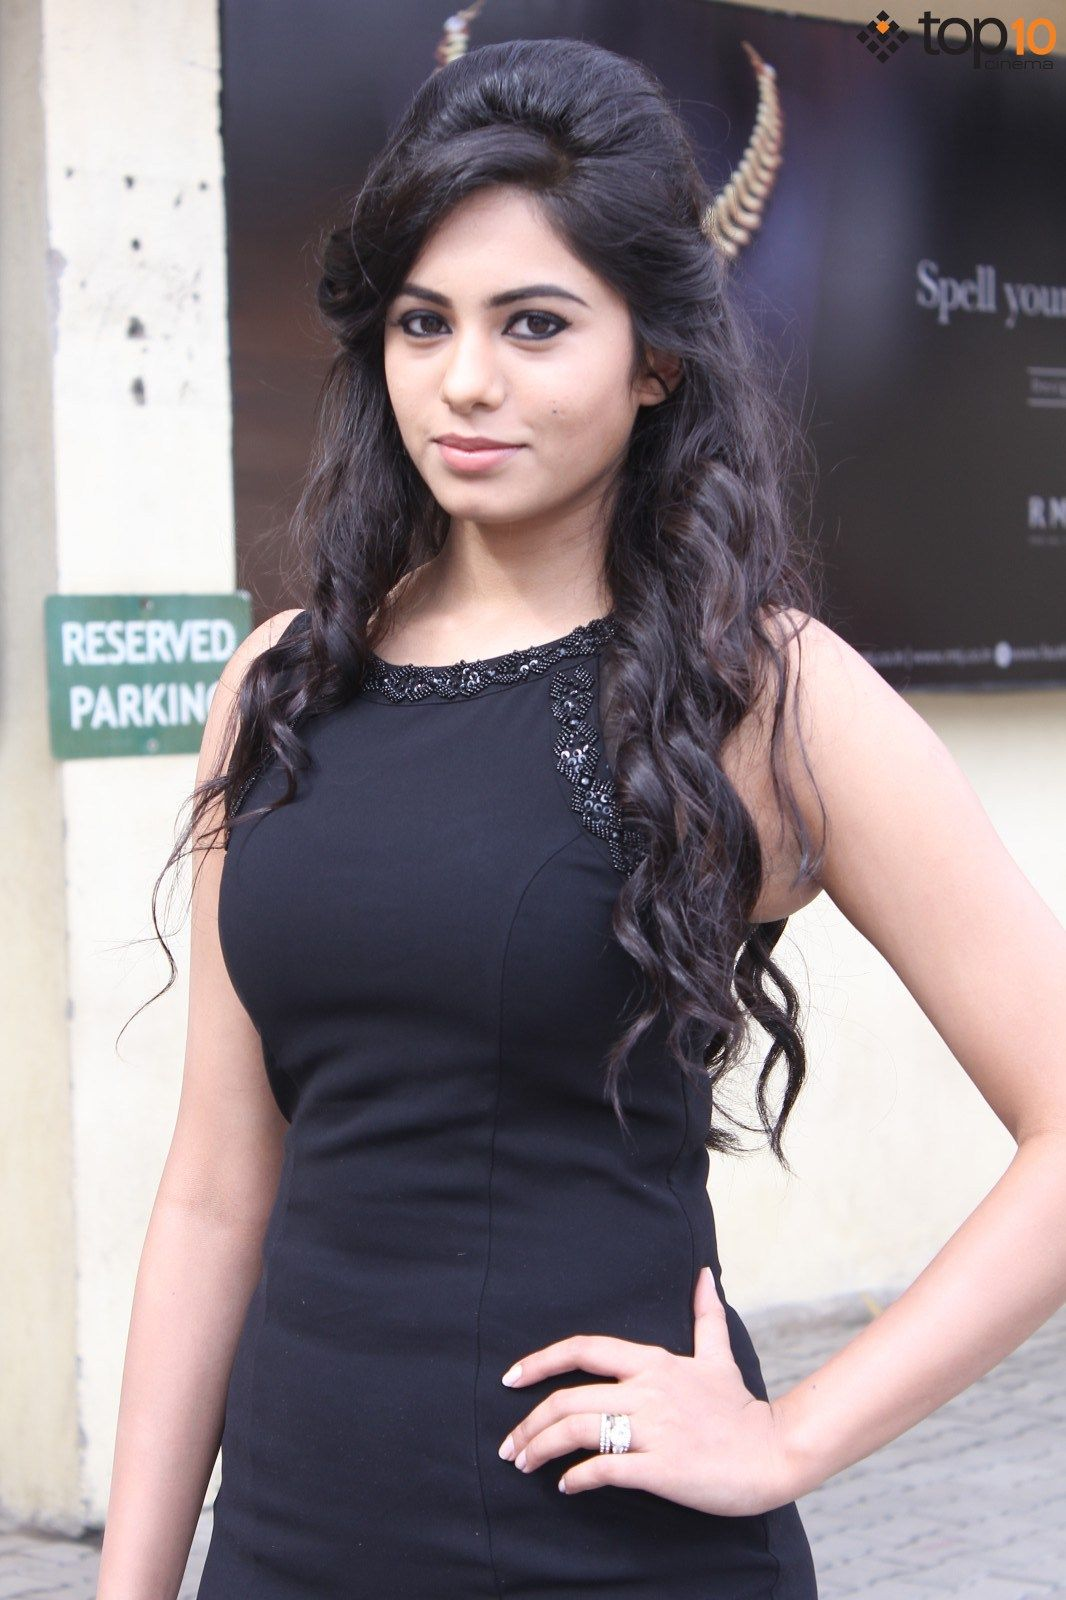 deepa sannidhi kannada movie listdeepa sannidhi wiki, deepa sannidhi ragalahari, deepa sannidhi married, deepa sannidhi instagram, deepa sannidhi in chowka, deepa sannidhi upcoming movies, deepa sannidhi latest news, deepa sannidhi songs, deepa sannidhi fb, deepa sannidhi kannada movie list, deepa sannidhi interview, deepa sannidhi caste, deepa sannidhi films, deepa sannidhi facebook, deepa sannidhi hot photos, deepa sannidhi hot navel, deepa sannidhi images, deepa sannidhi biography, deepa sannidhi in enakkul oruvan, deepa sannidhi twitter